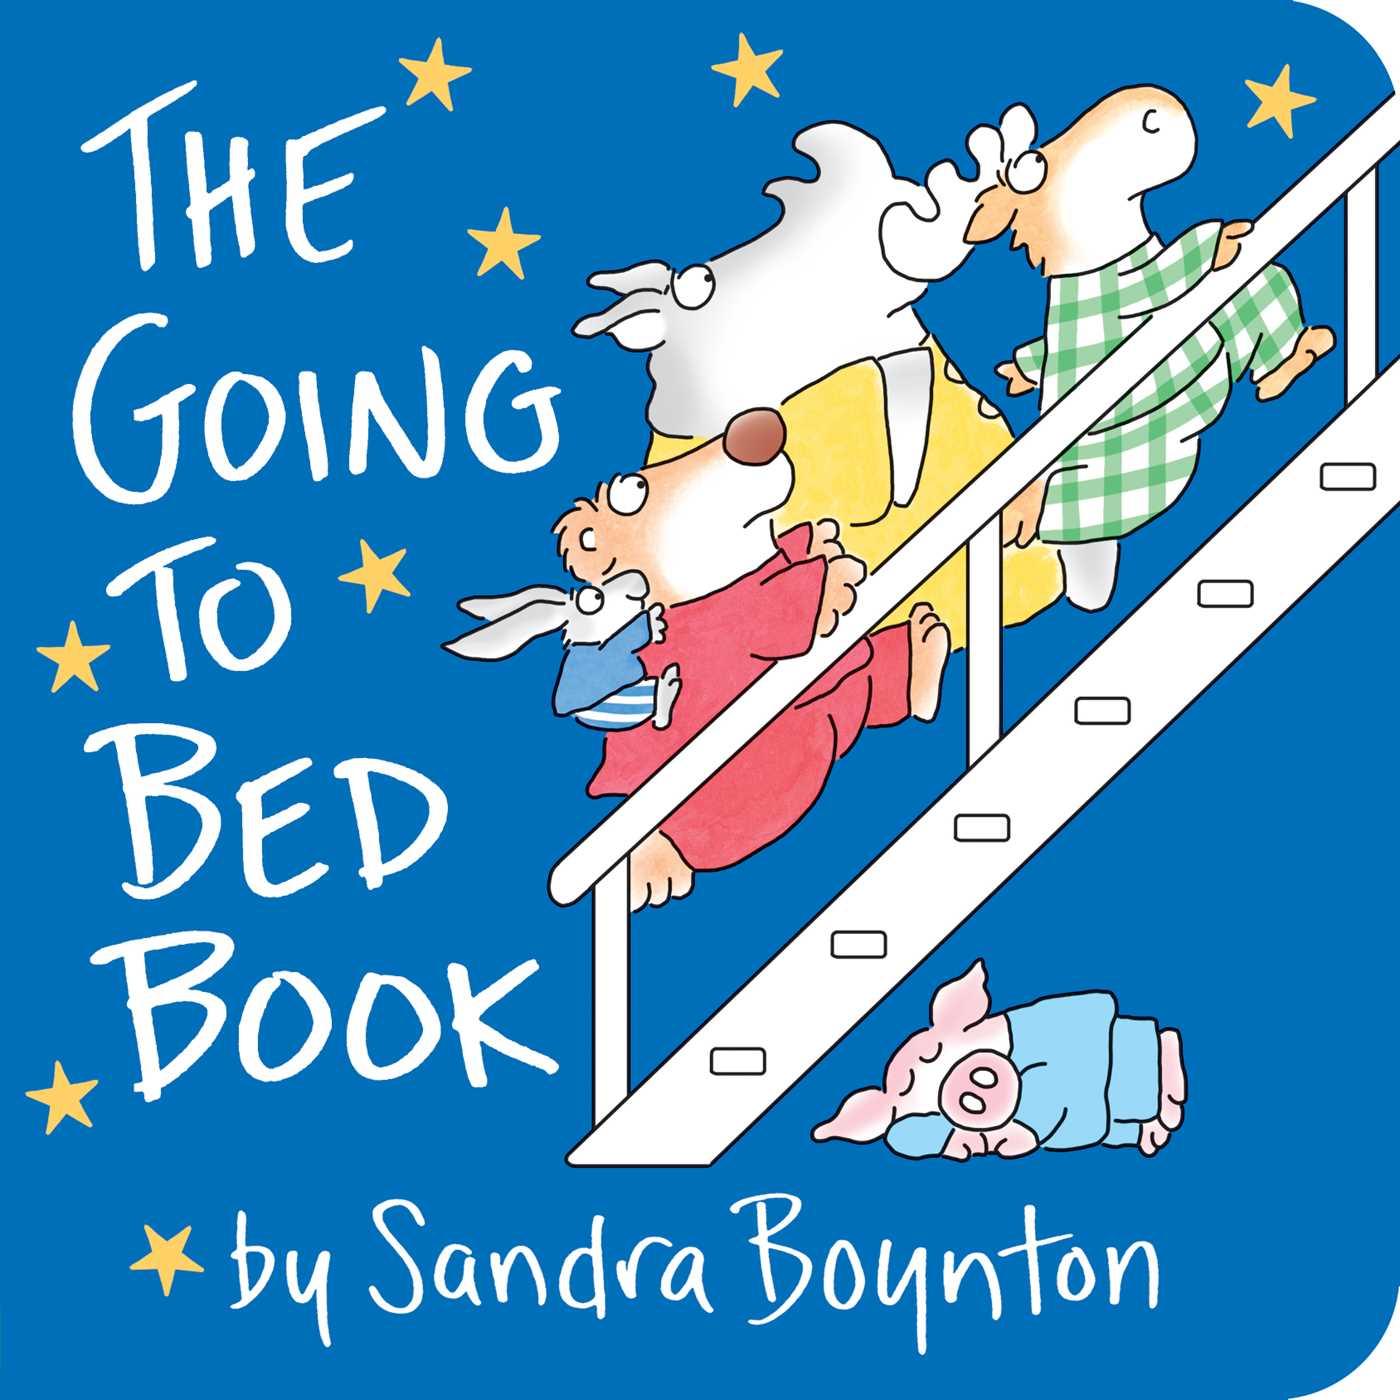 The-going-to-bed-book-9780671449025_hr